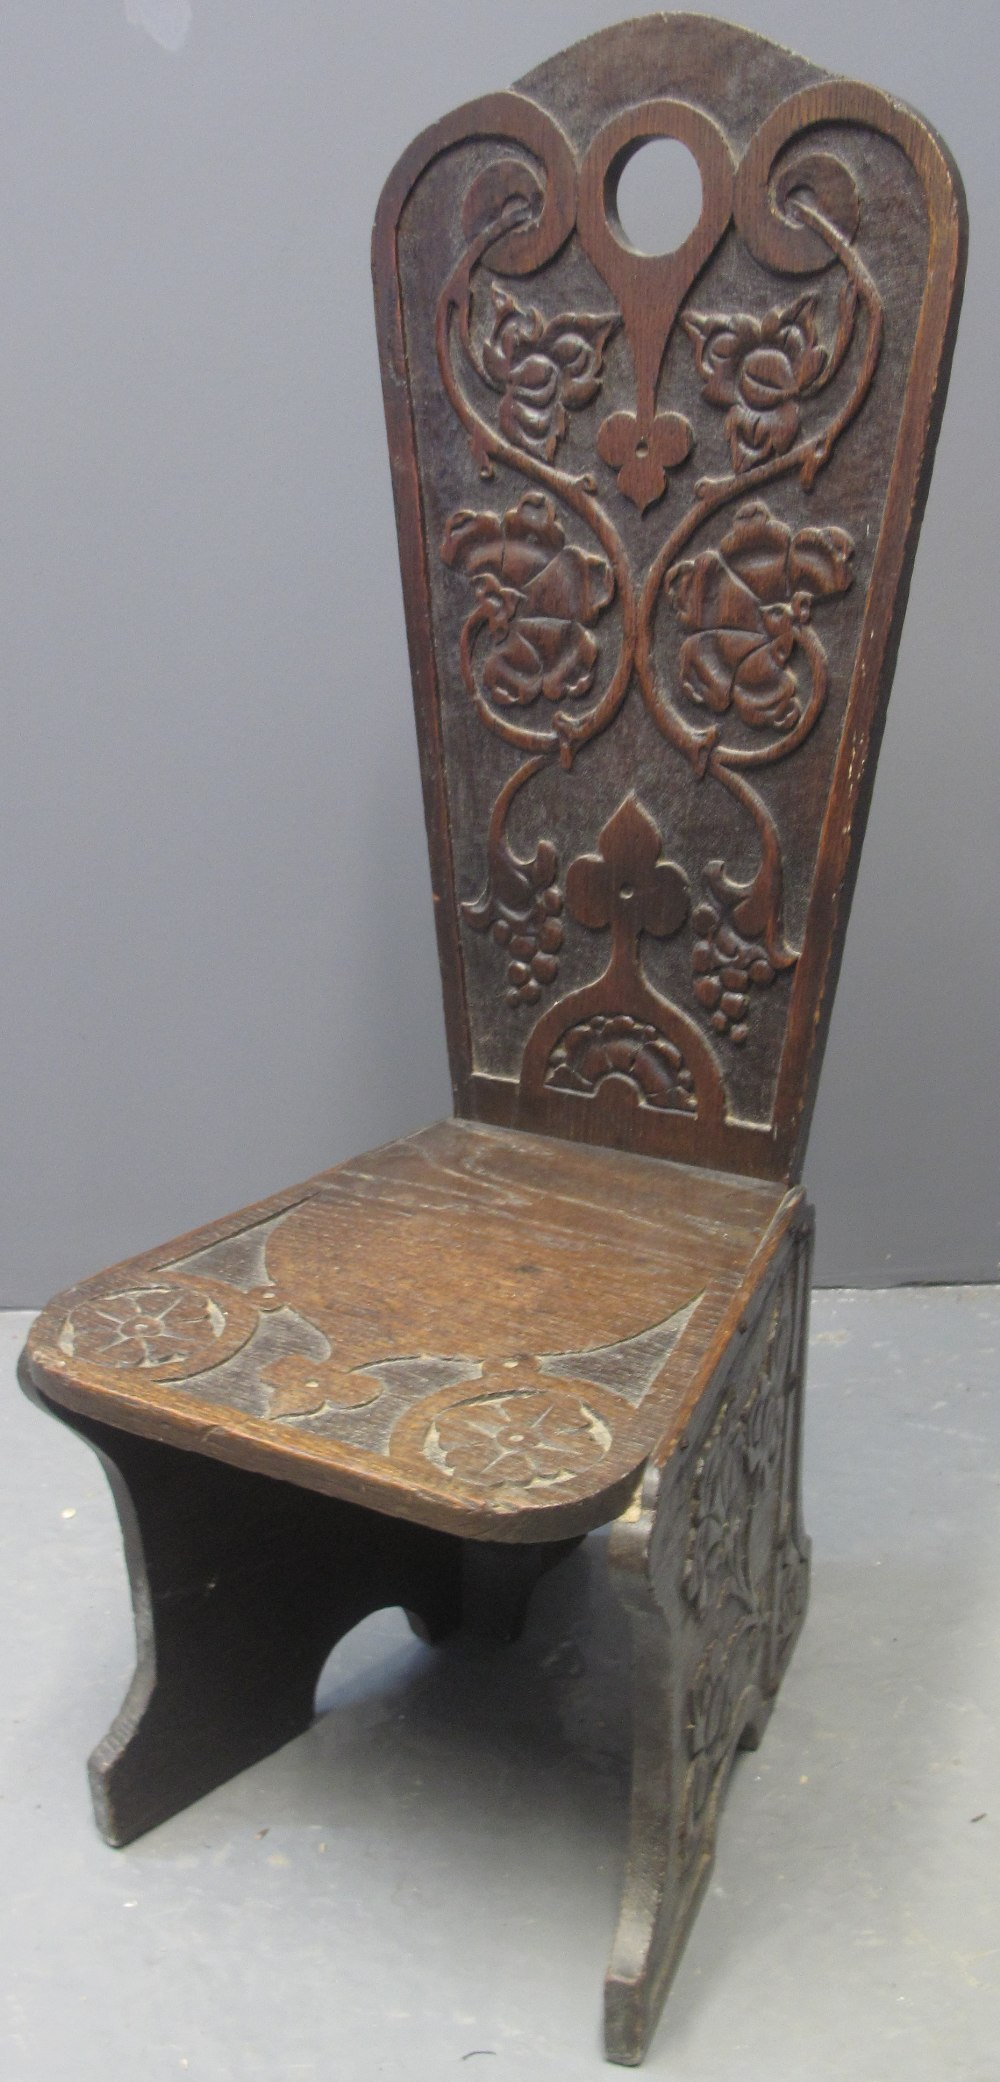 Lot 138 - 19TH CENTURY CARVED OAK GOTHIC DESIGN SPINNING CHAIR having tracery and flower head moulded